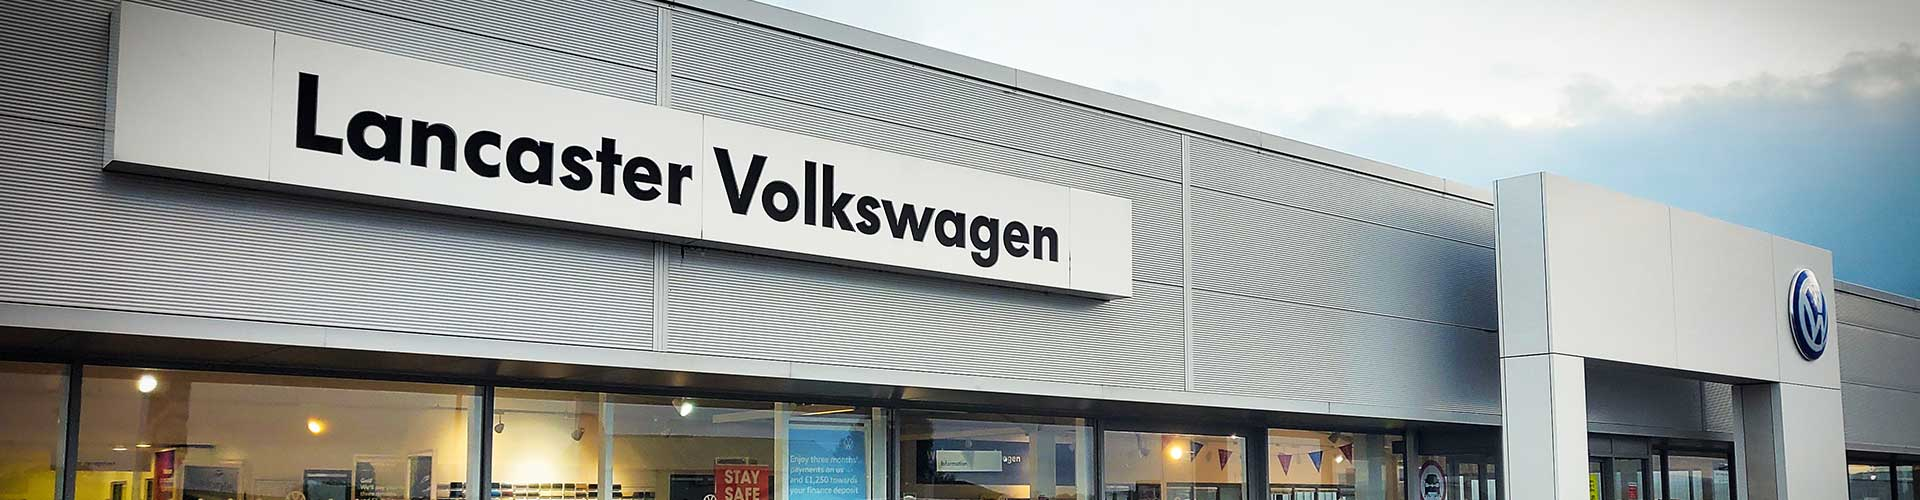 Lancaster VW Dealership Image 1